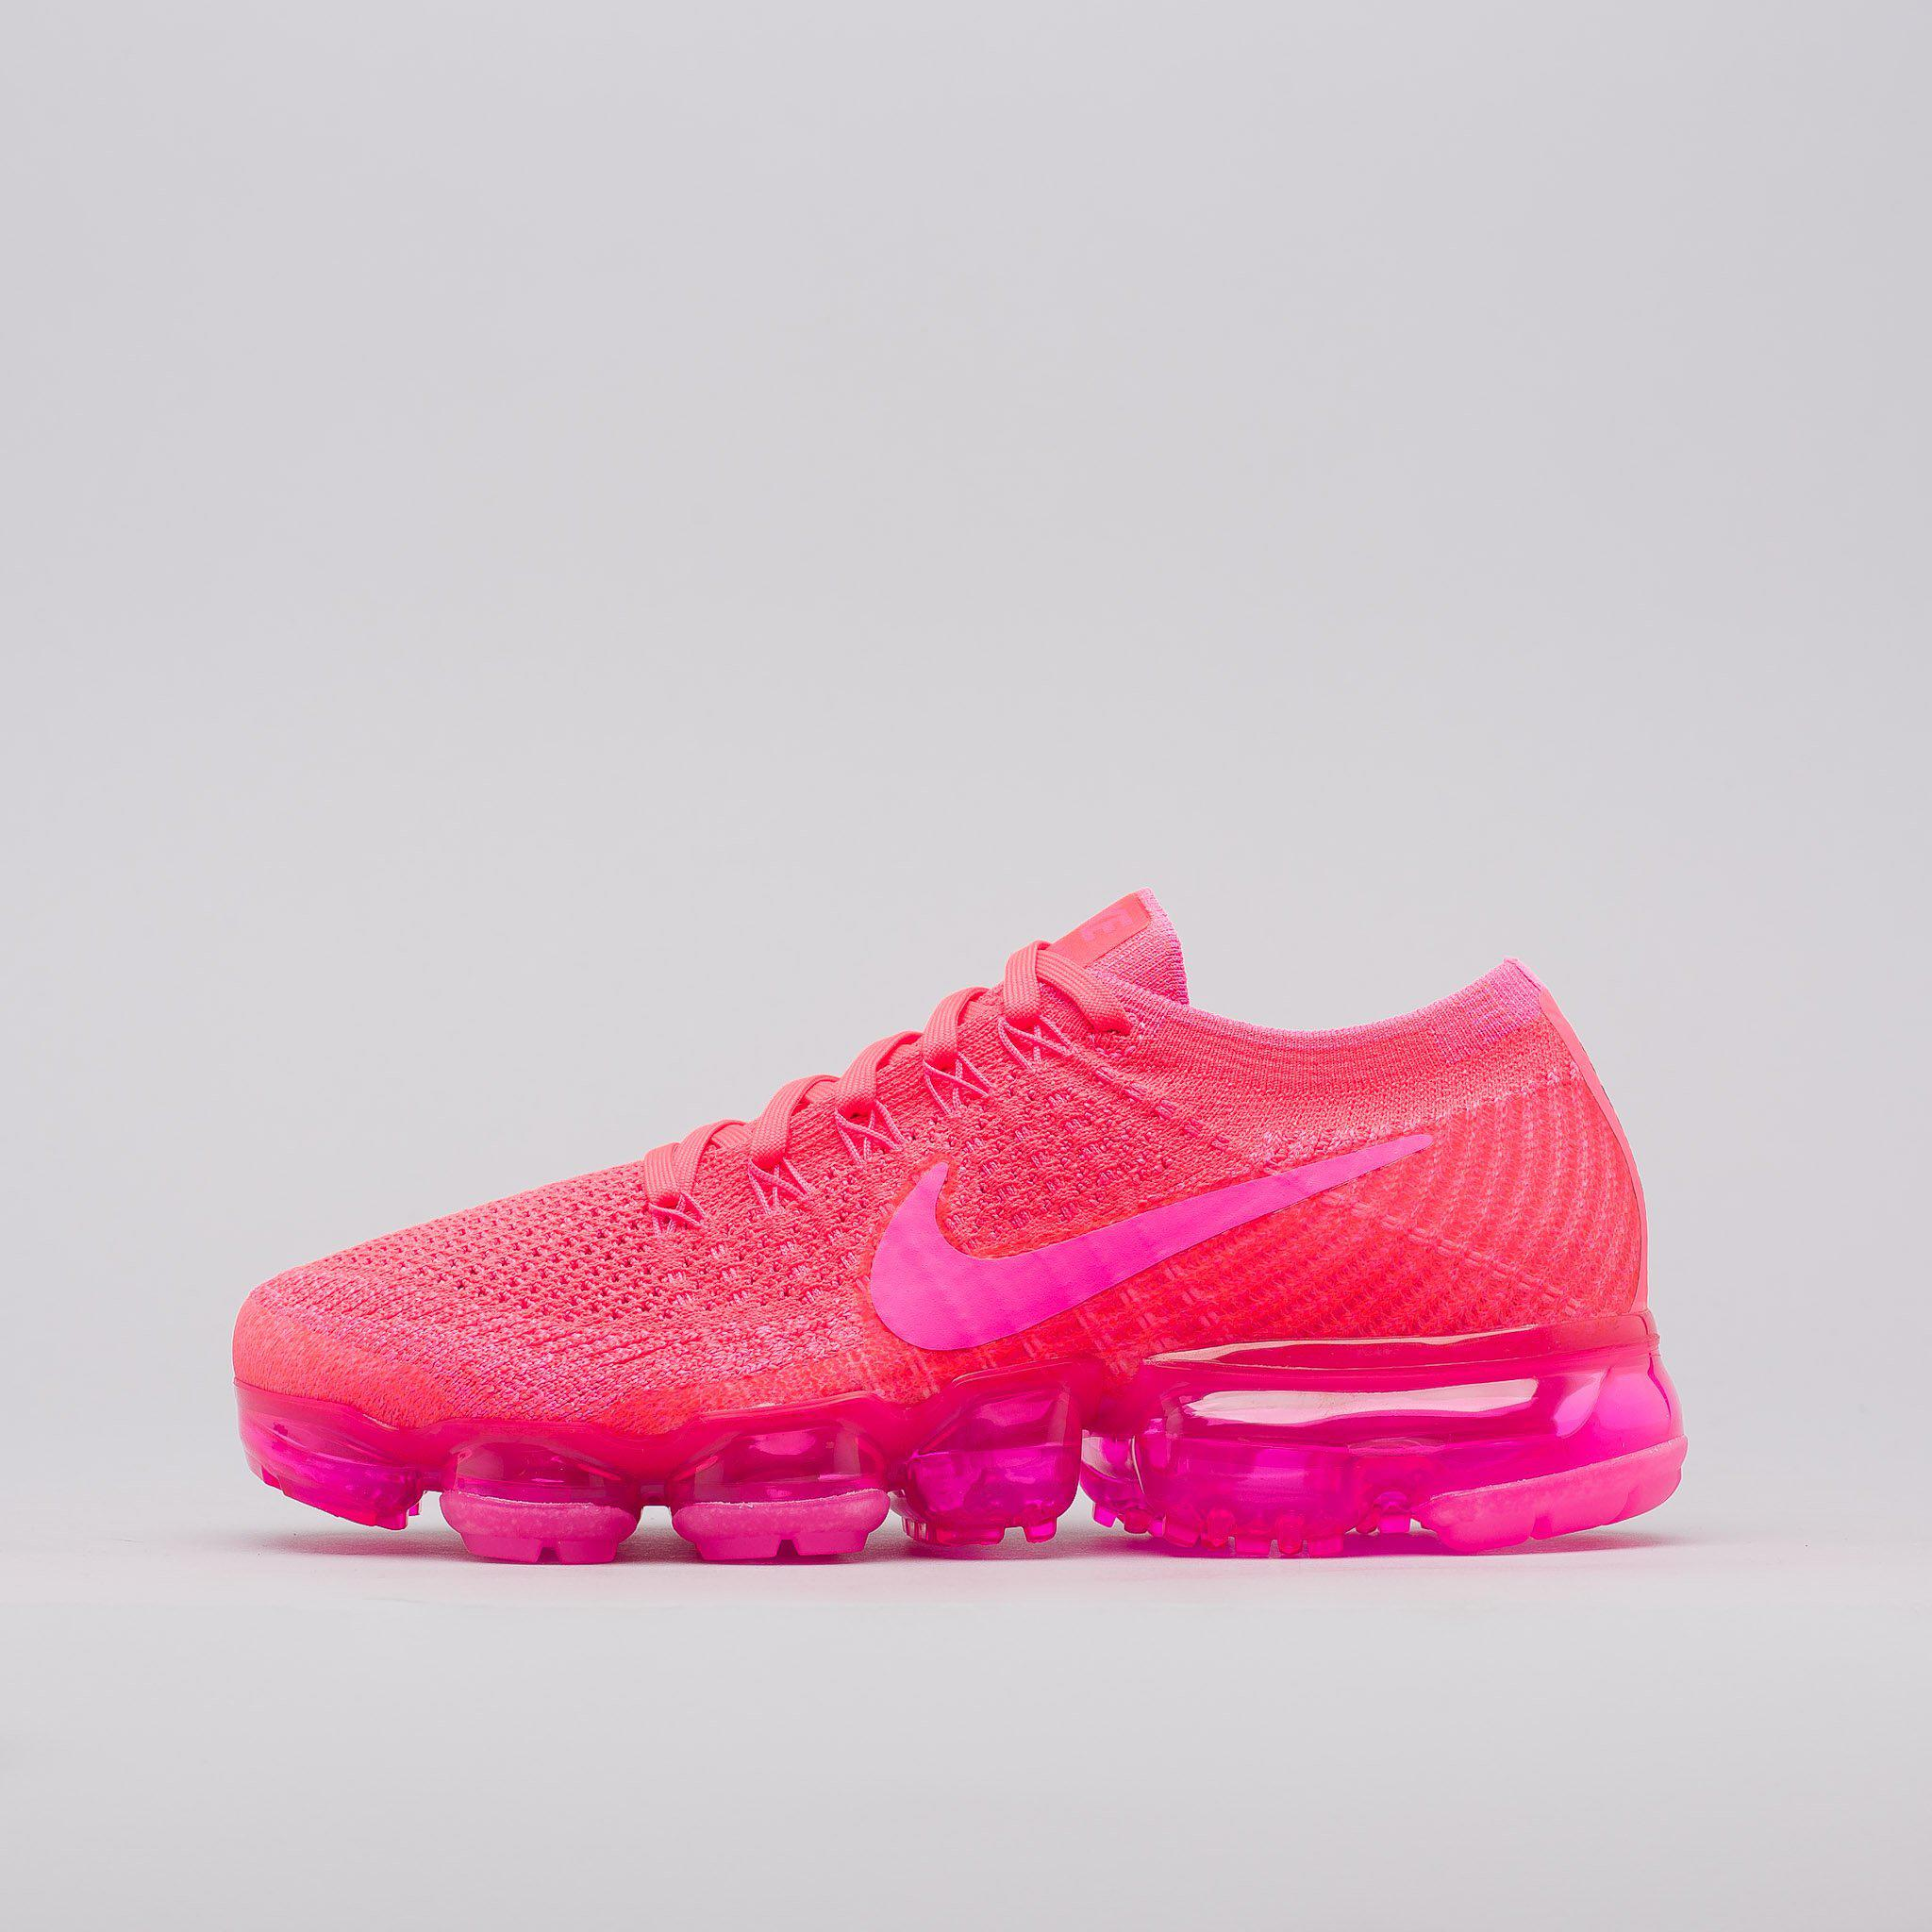 official photos 27ad4 35a05 Nike Pink Women's Air Vapormax Flyknit In Hyper Punch for men